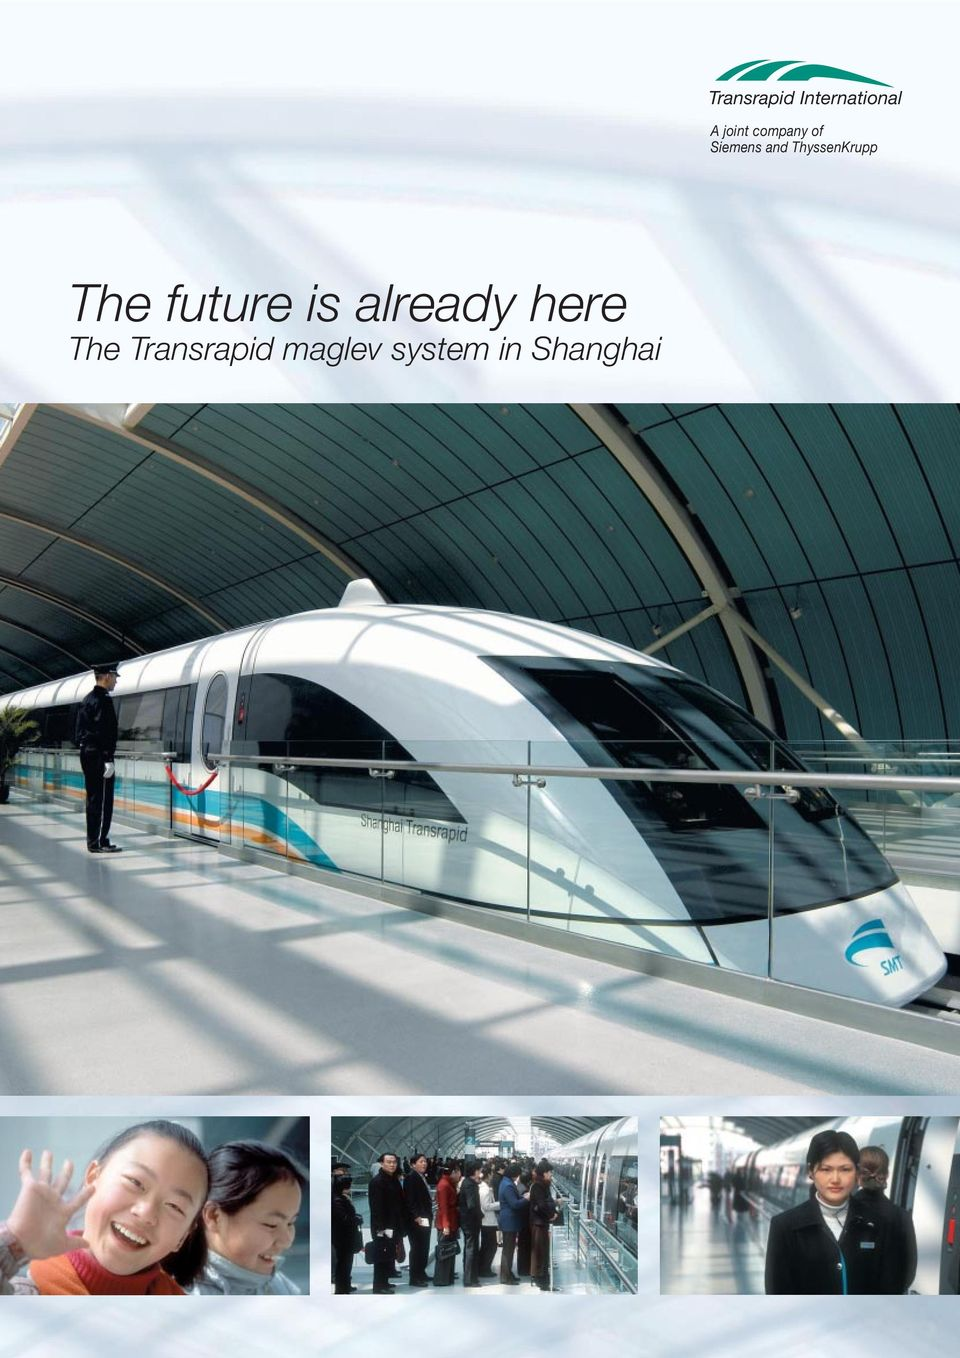 ThyssenKrupp The future is